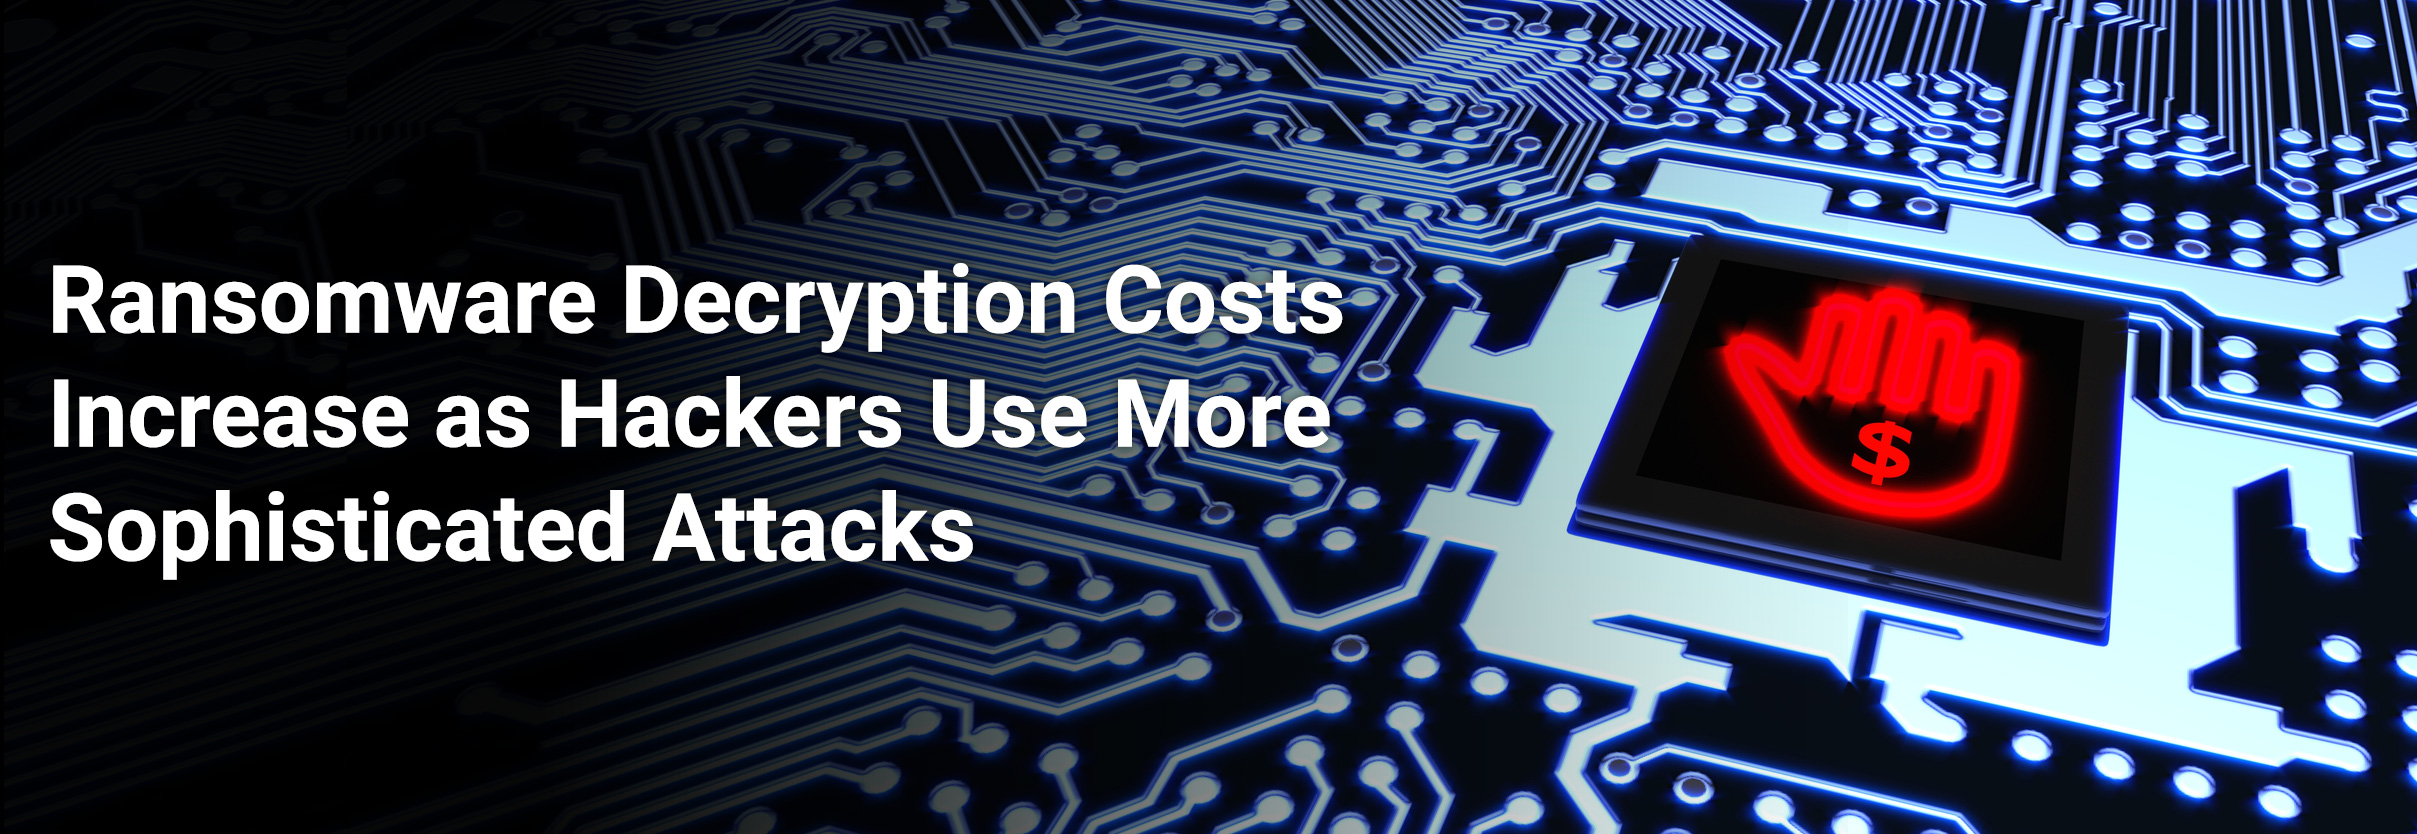 Ransomware Decryption Costs Increase as Hackers Use More Sophisticated Attacks